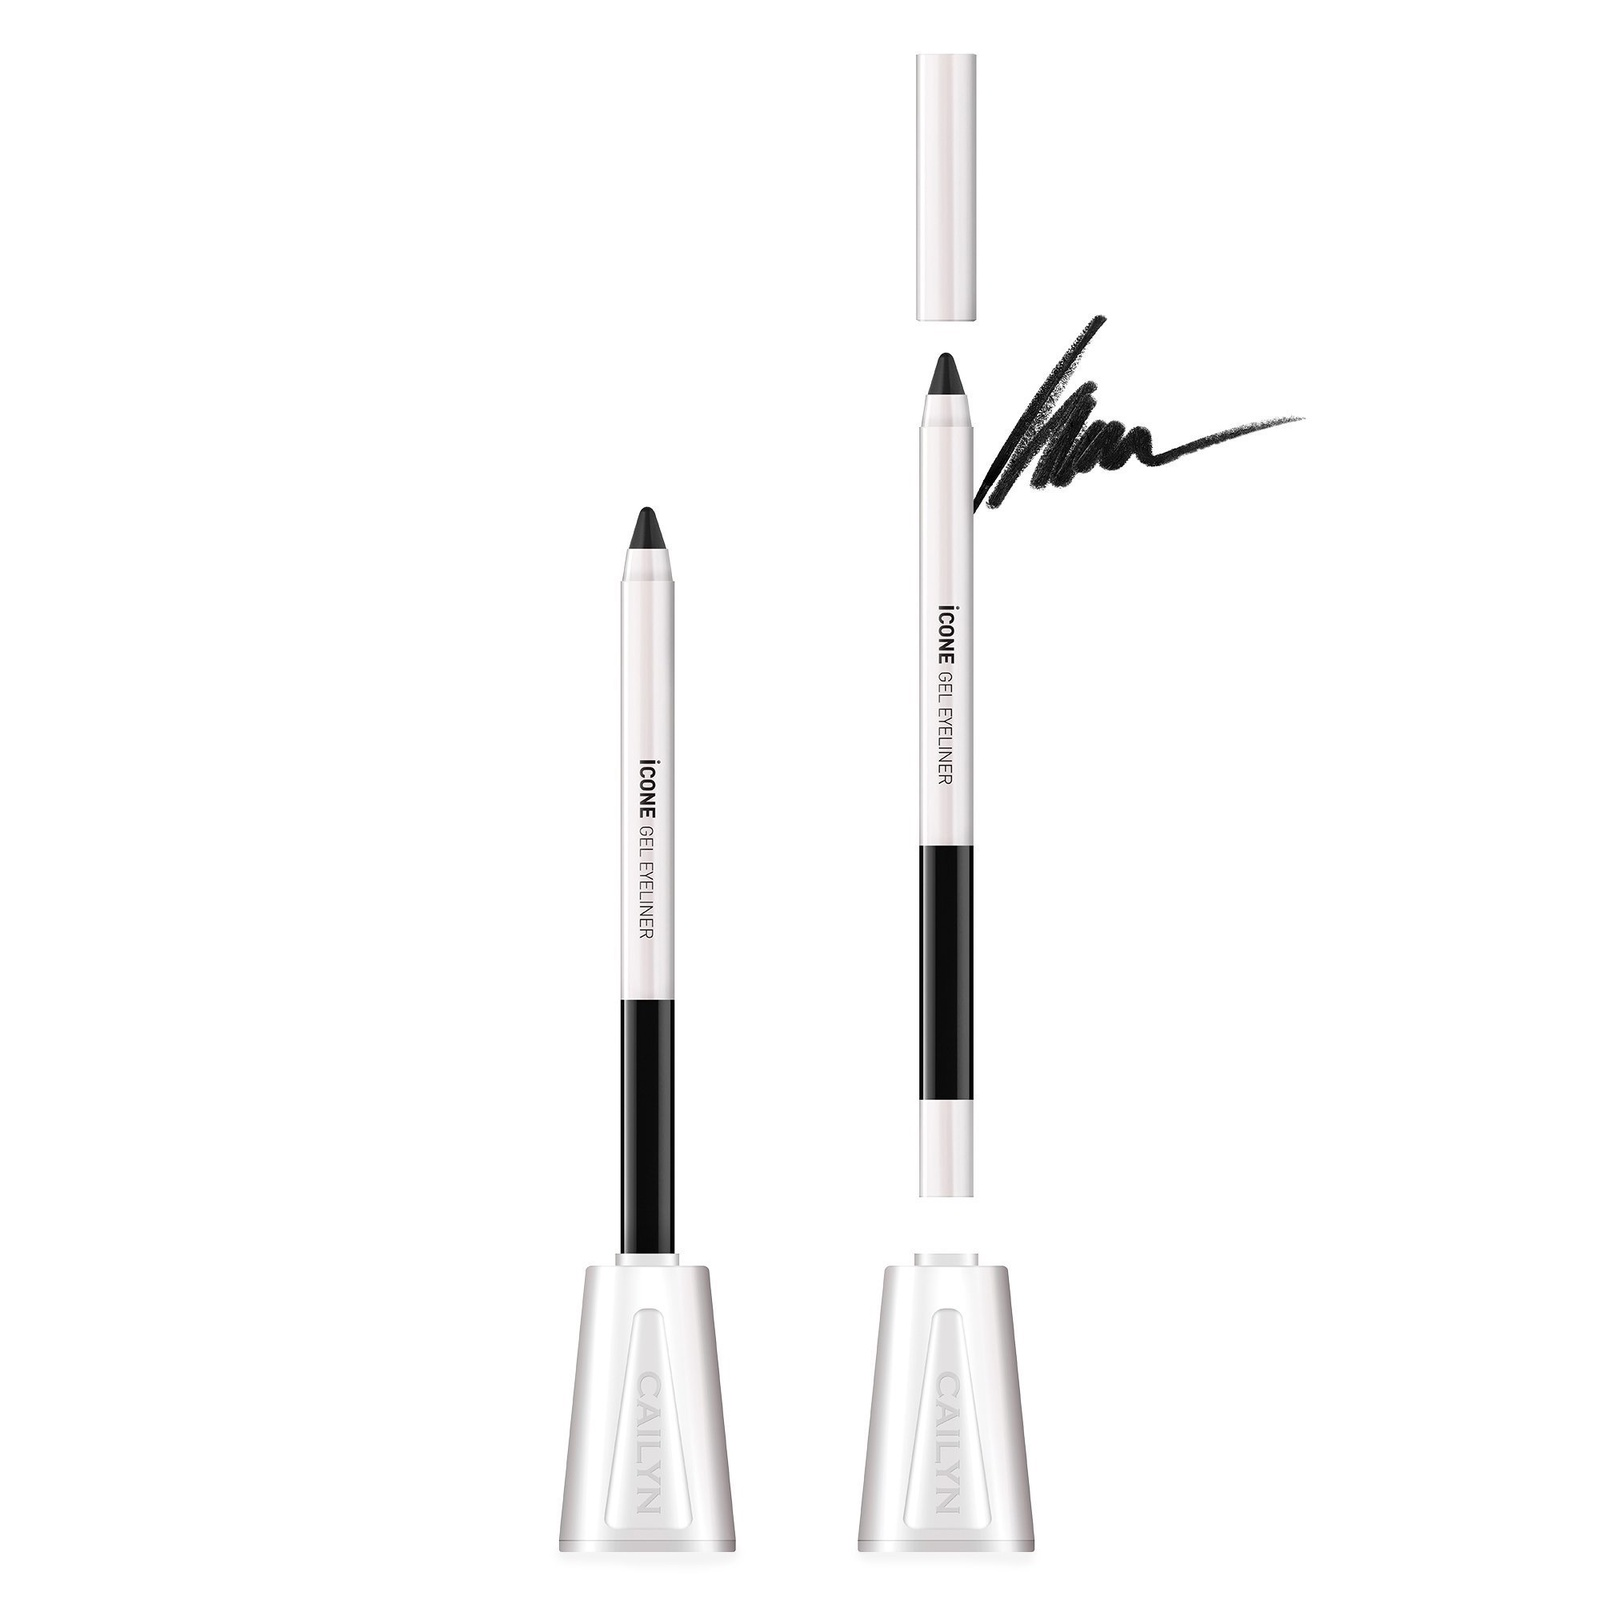 Карандаш для глаз Cailyn iCone Gel Eyeliner оттенок E01 Black, 1.2 гр платок icone